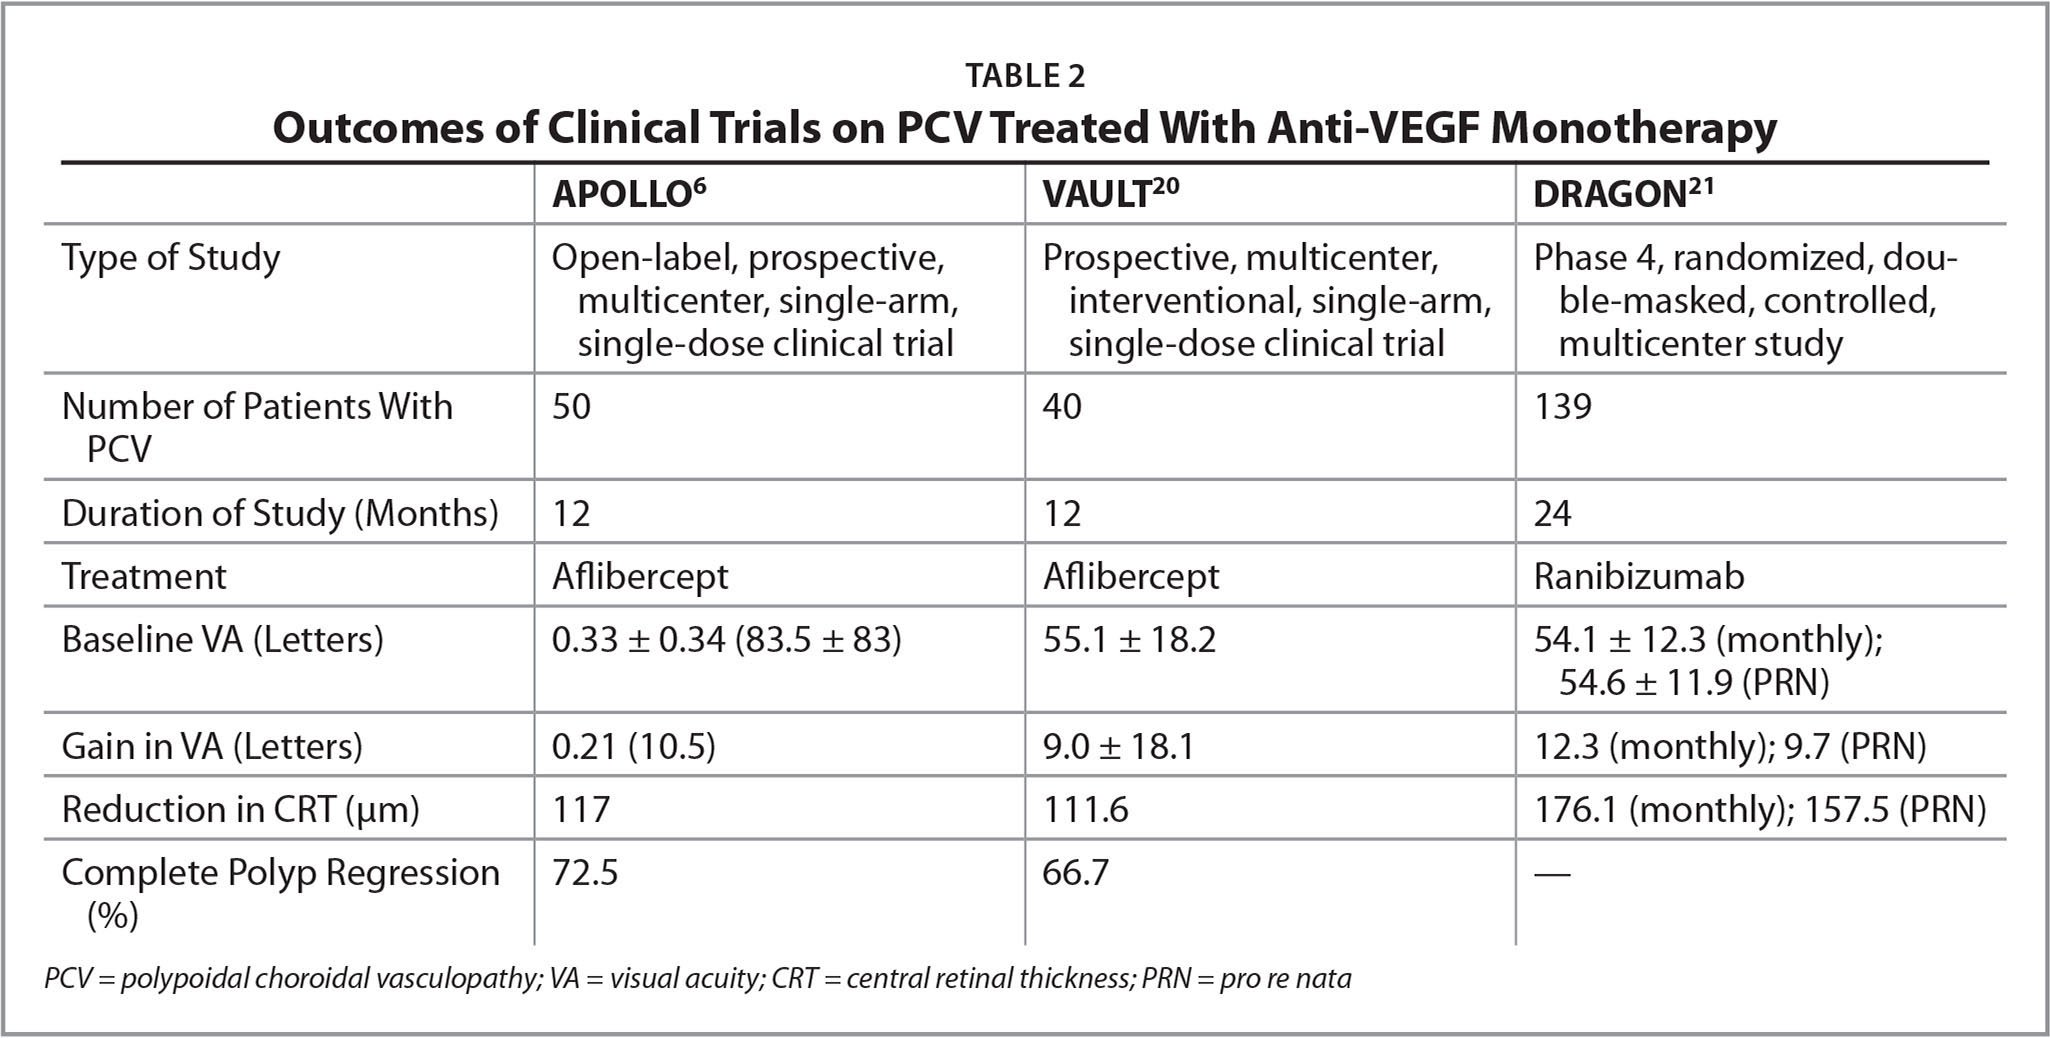 Outcomes of Clinical Trials on PCV